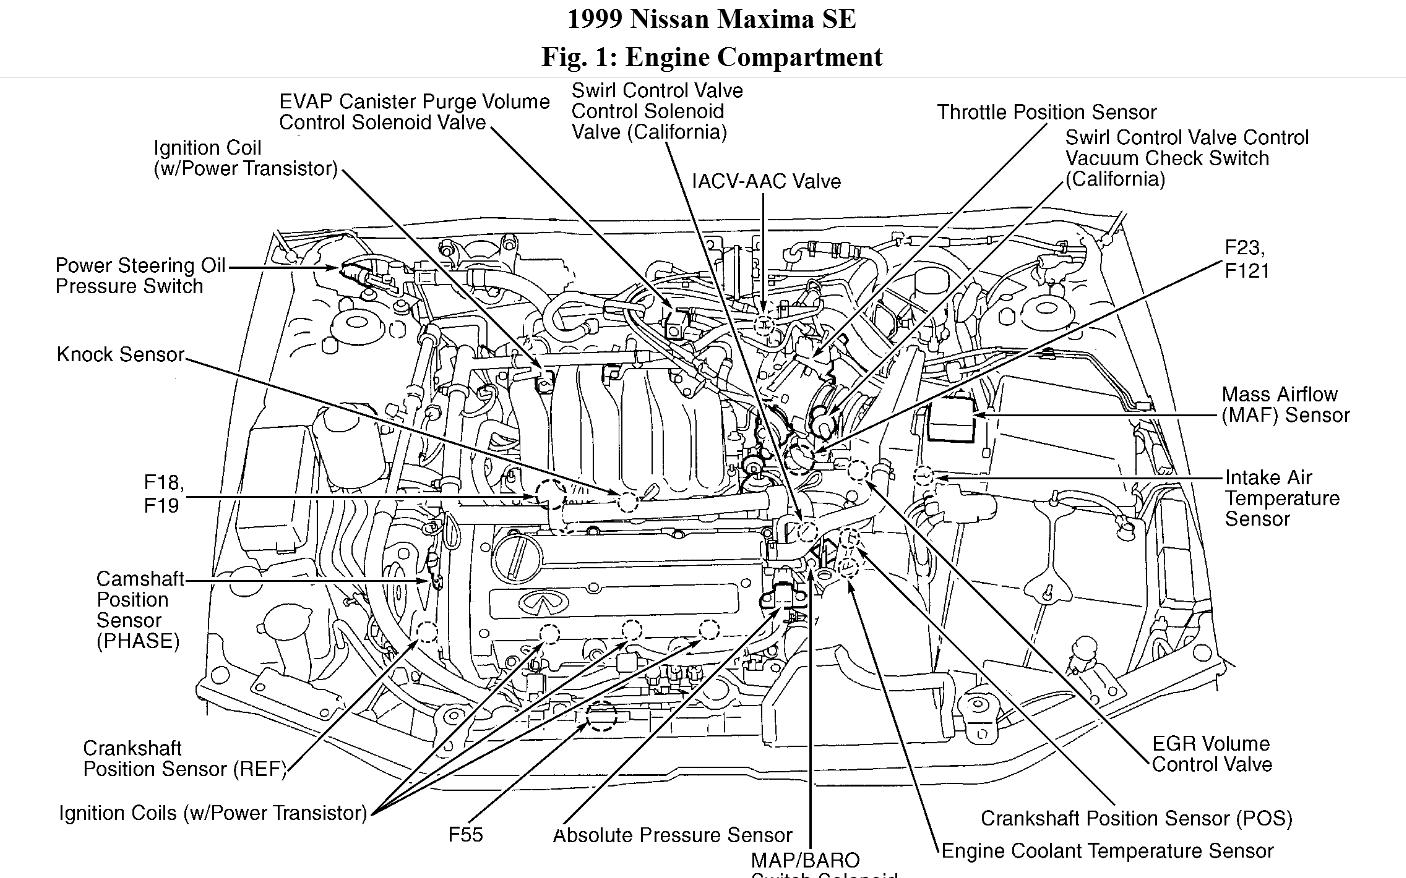 Nissan Maxima Fuse Box Auto Electrical Wiring Diagram 1999